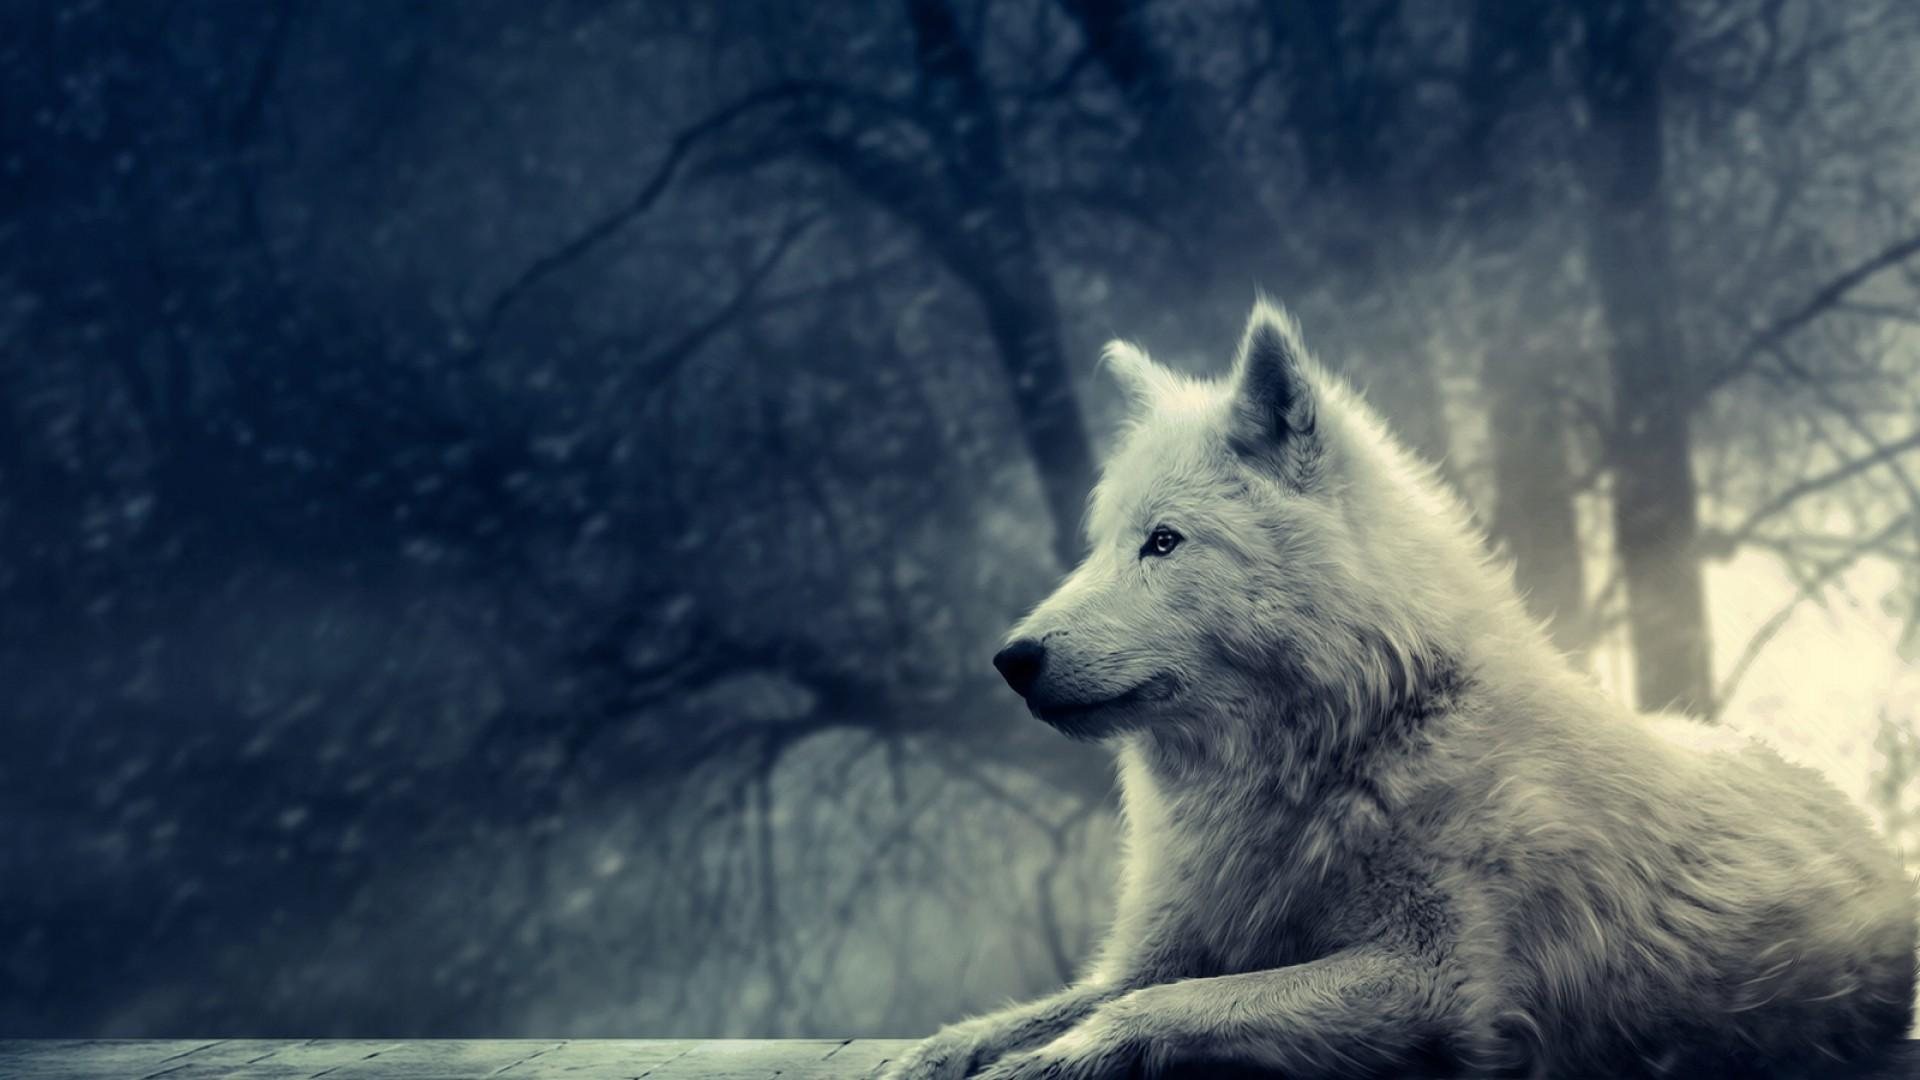 awesome hd wallpapers of wolf download best desktop background hd 1920x1080